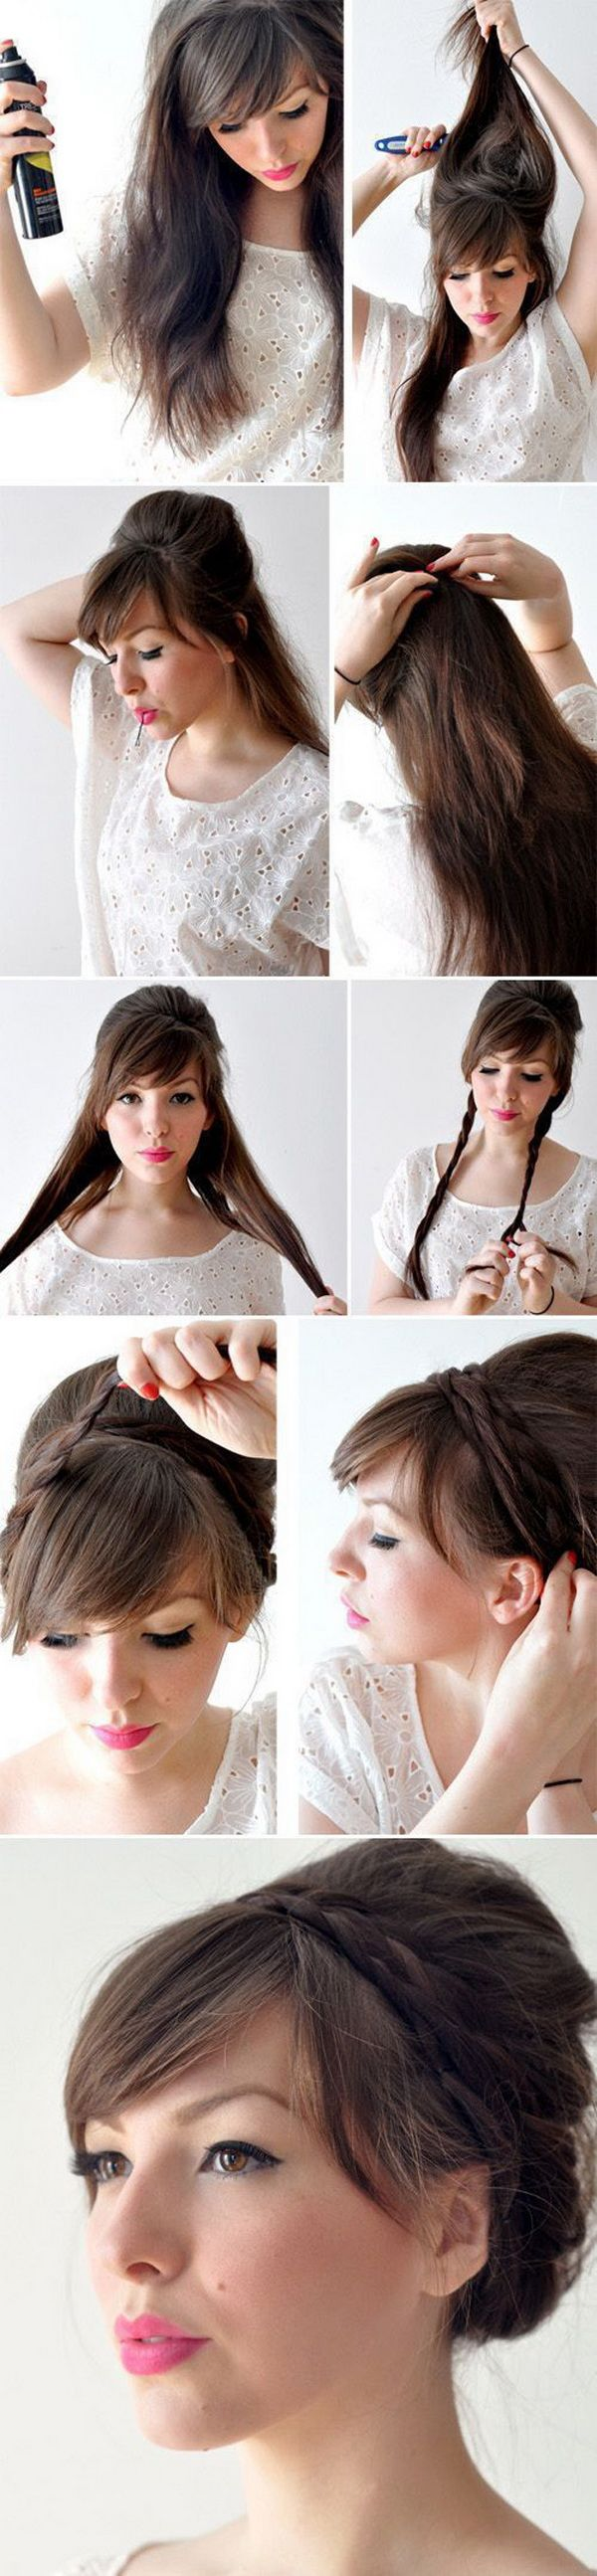 Creative hairstyles